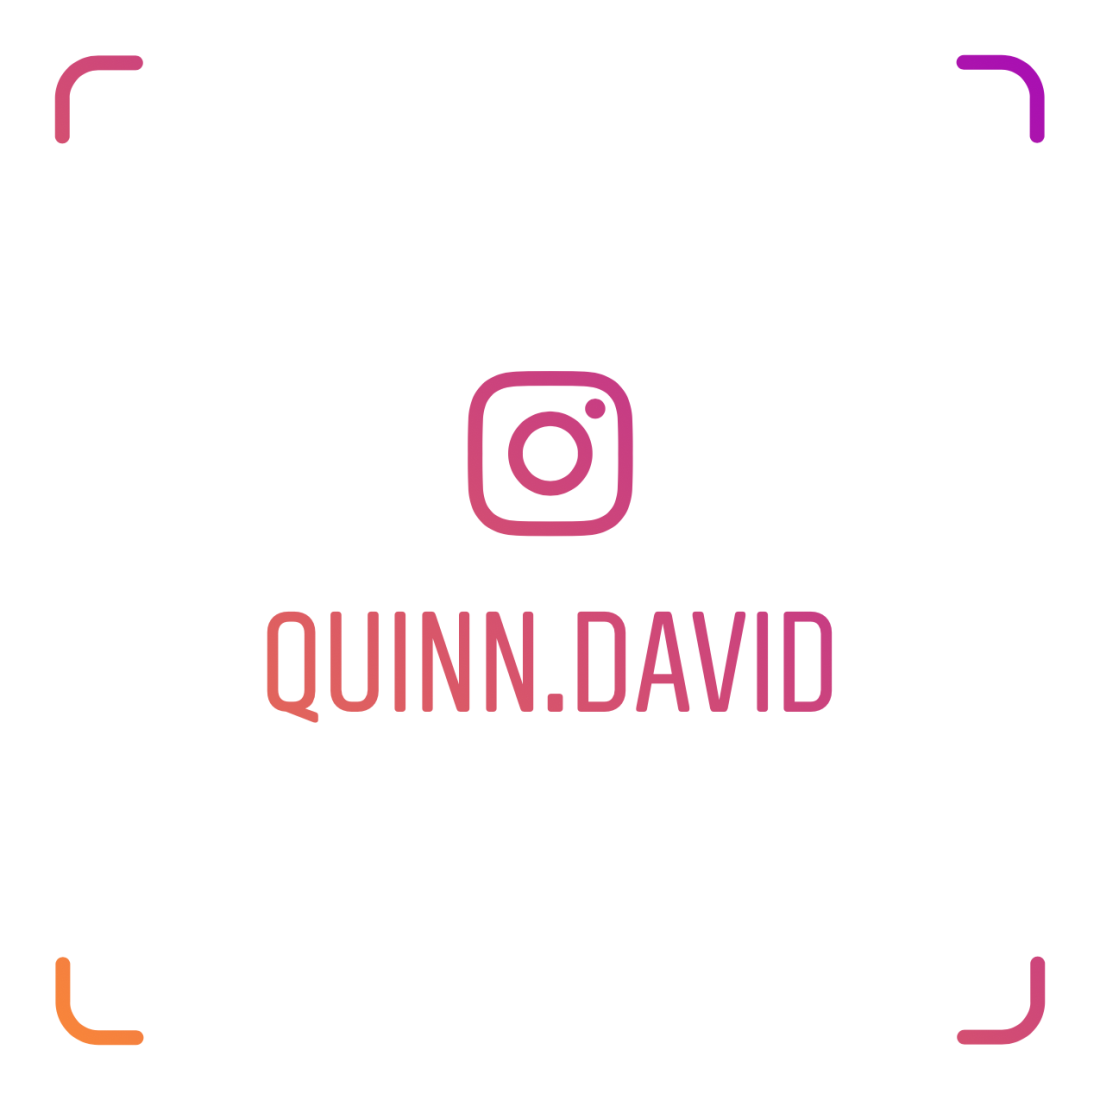 quinn.david_nametag.png